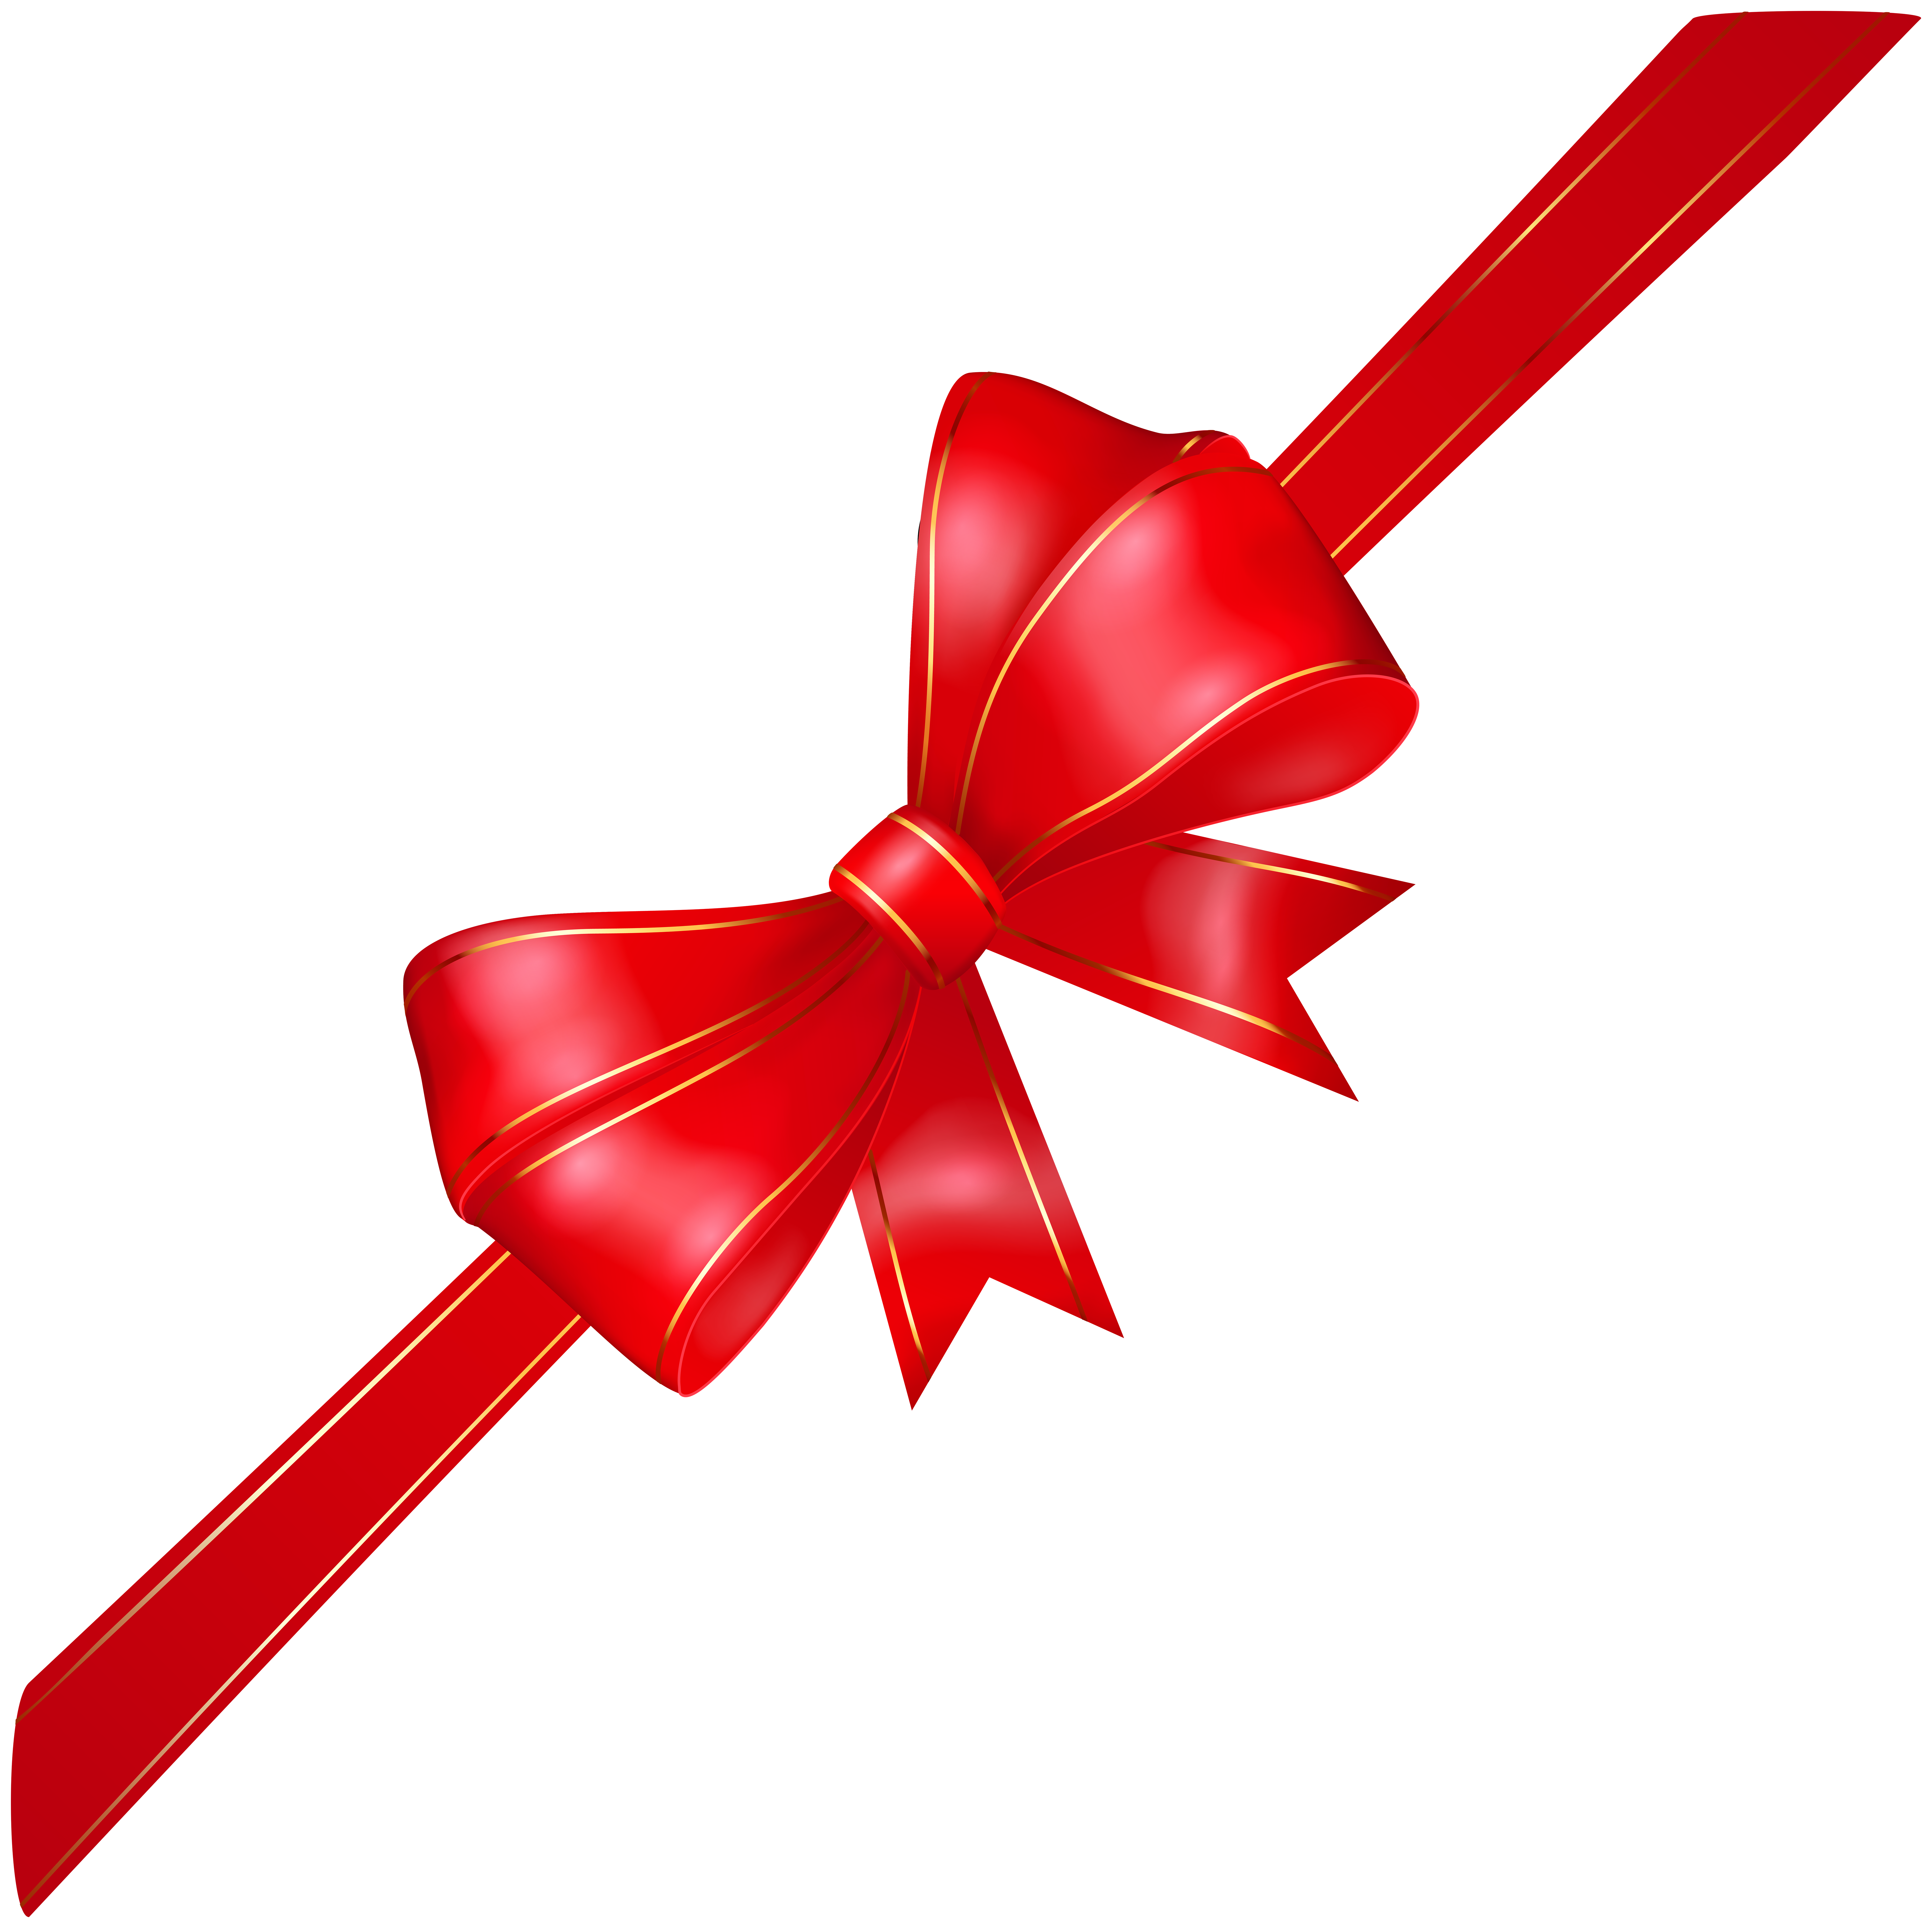 Corner bow transparent image. Red backgrounds png png royalty free stock